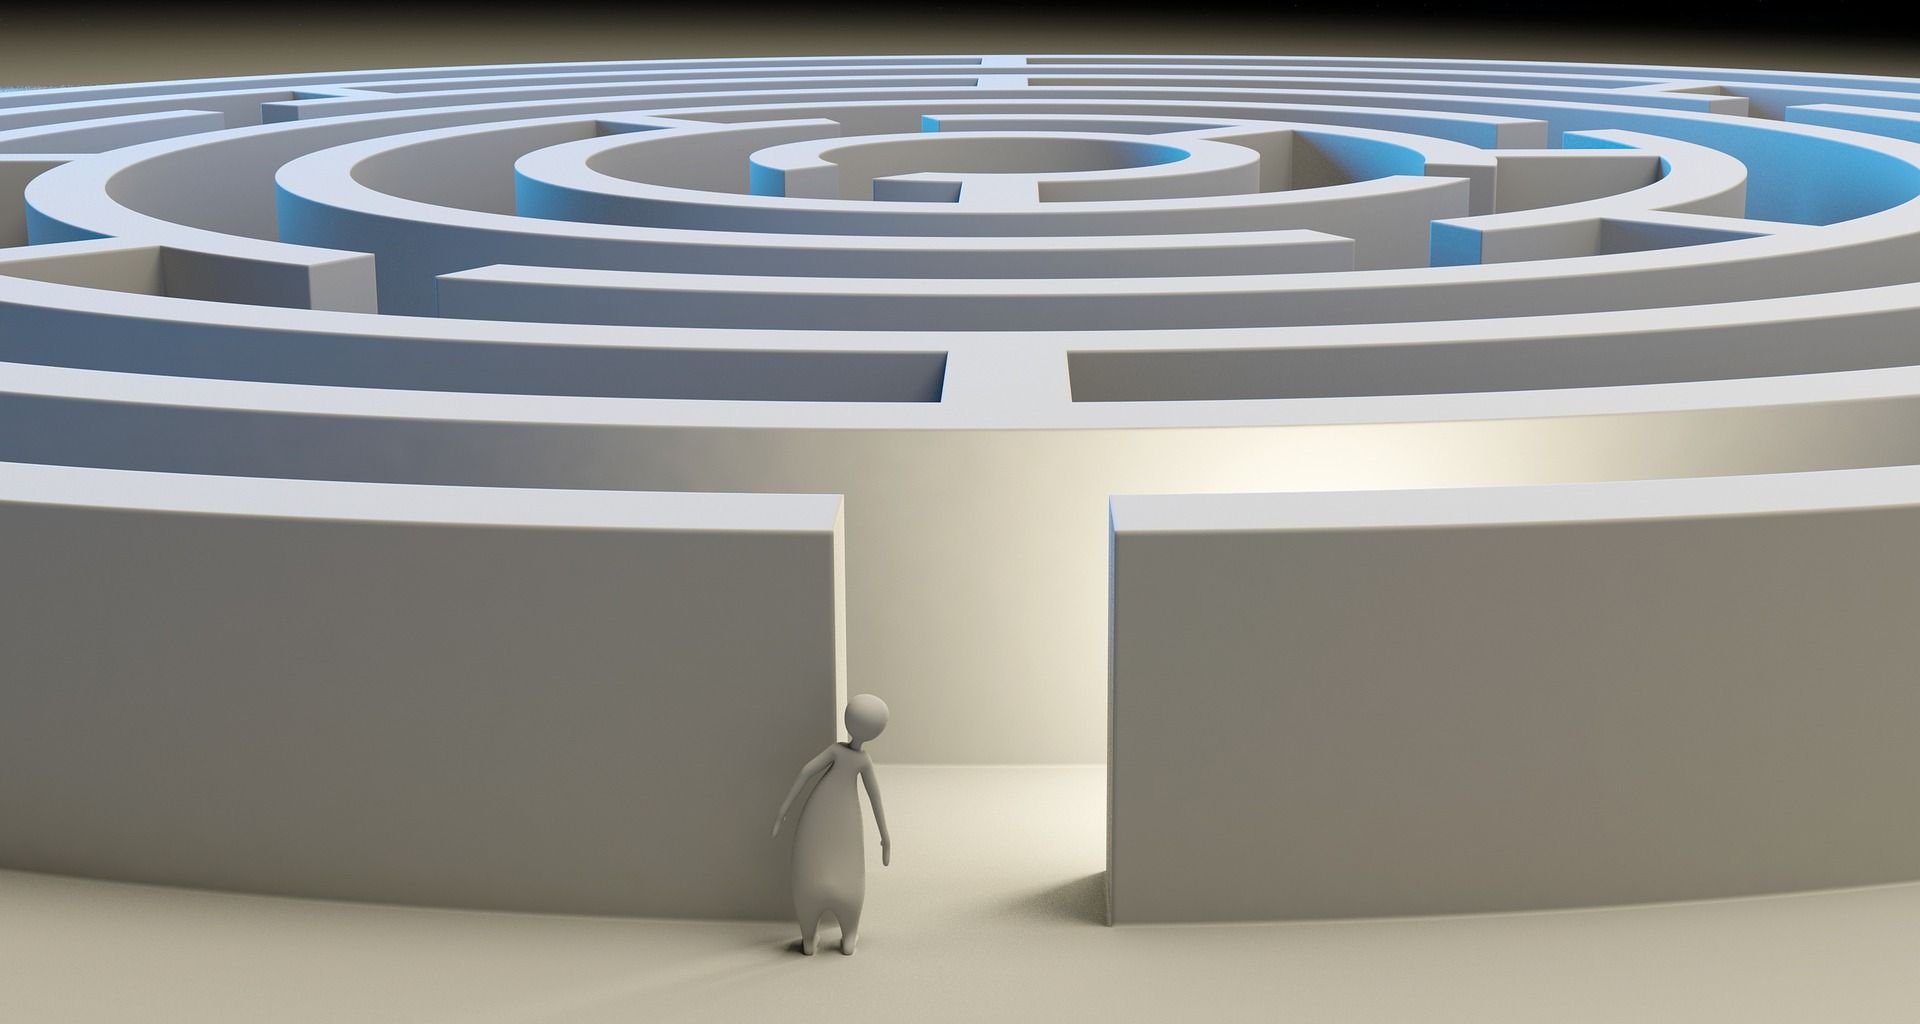 Biggest Obstacles Your Business May Face